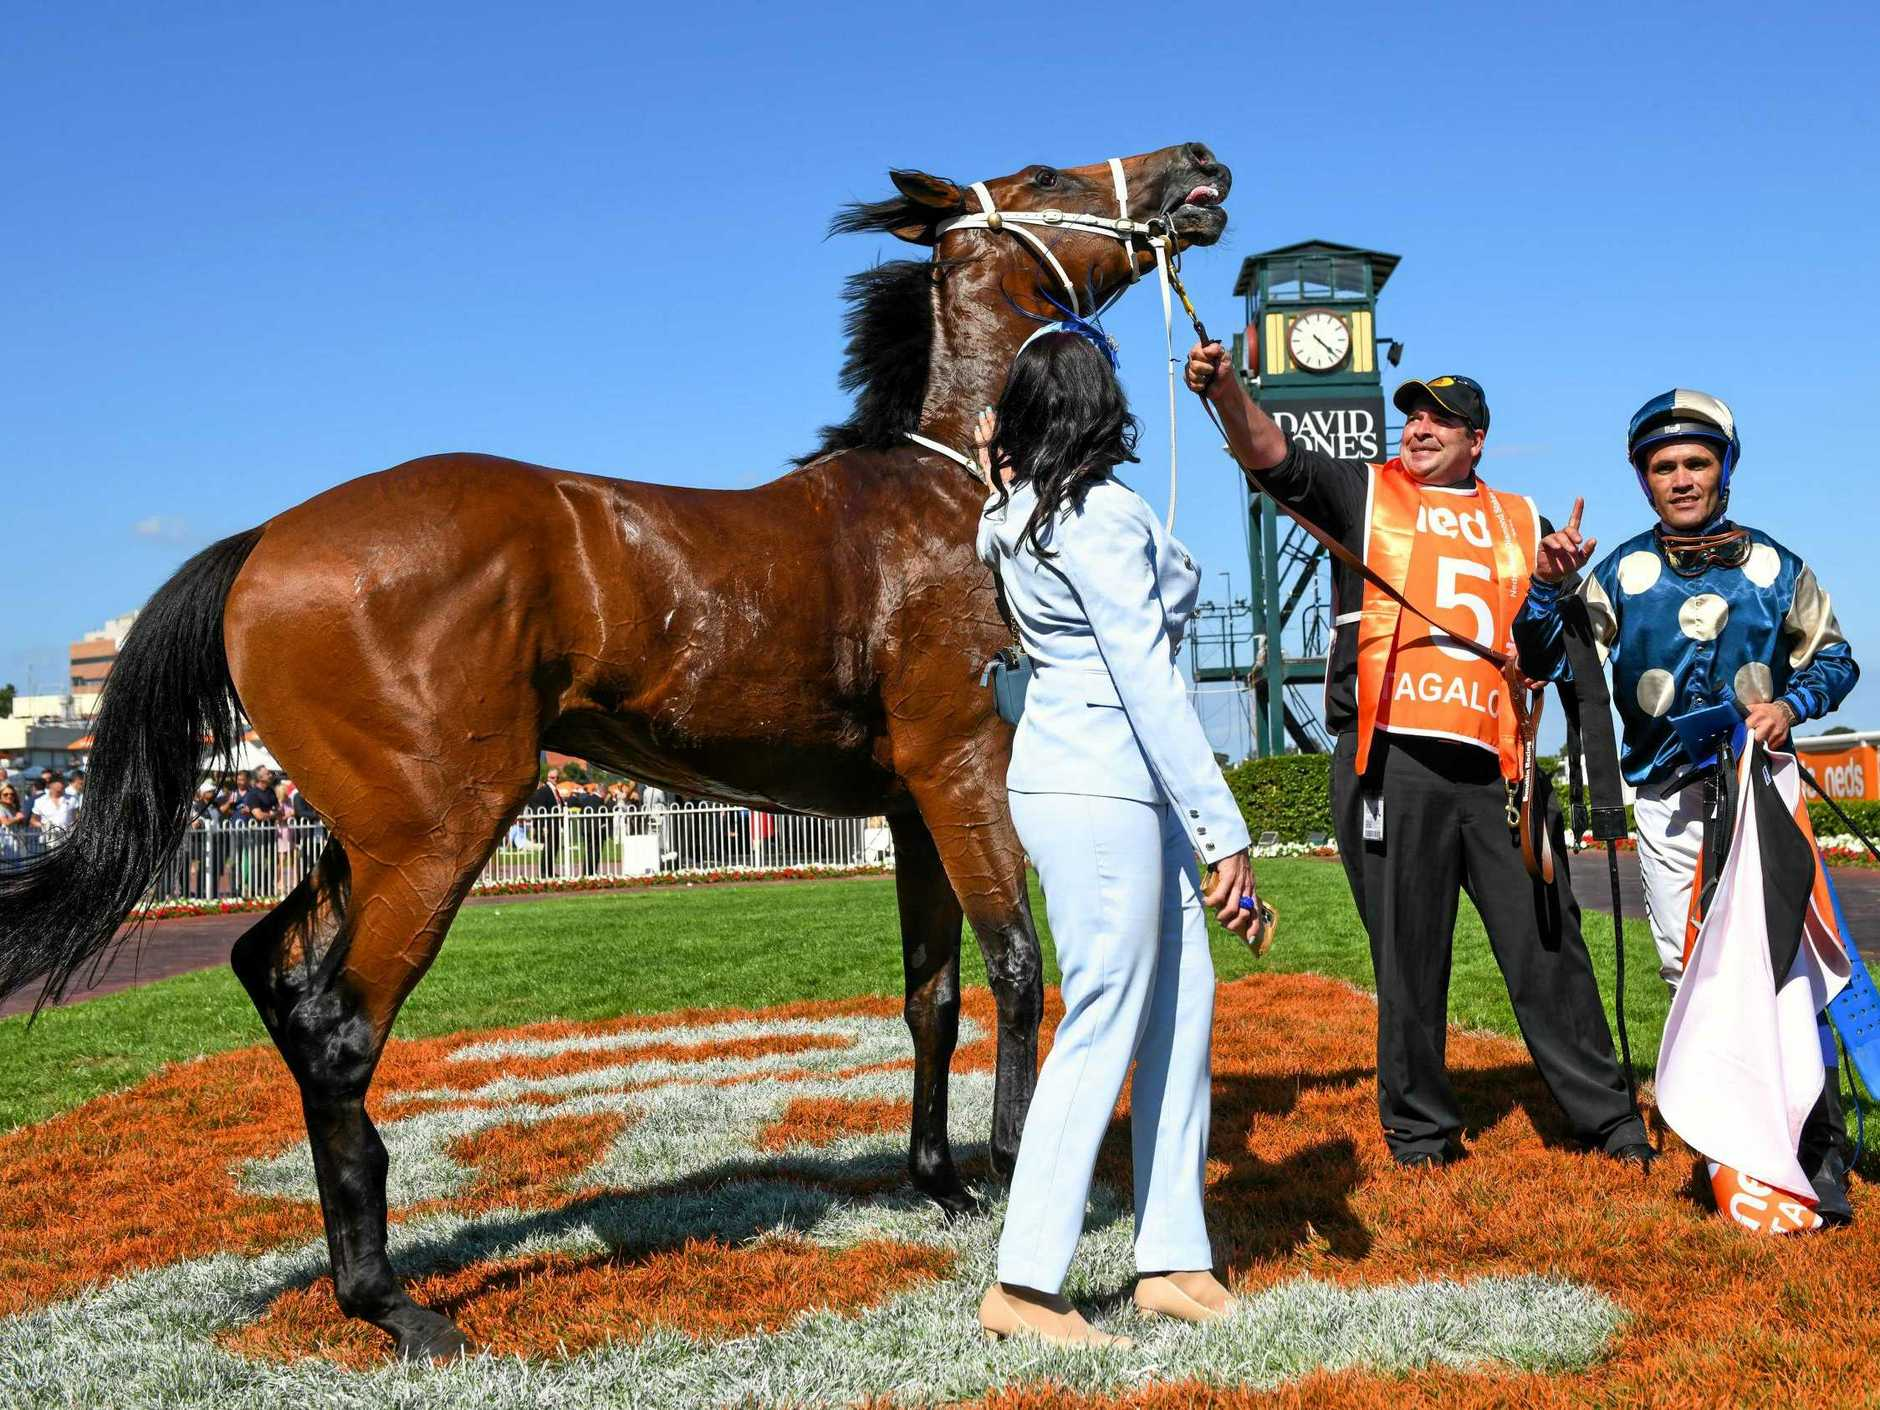 Jockey Michael Walker returns to scale with trainer Natalie Young after riding Tagaloa to victory in Blue Diamond Stakes. Picture: Vince Caligiuri/AAP